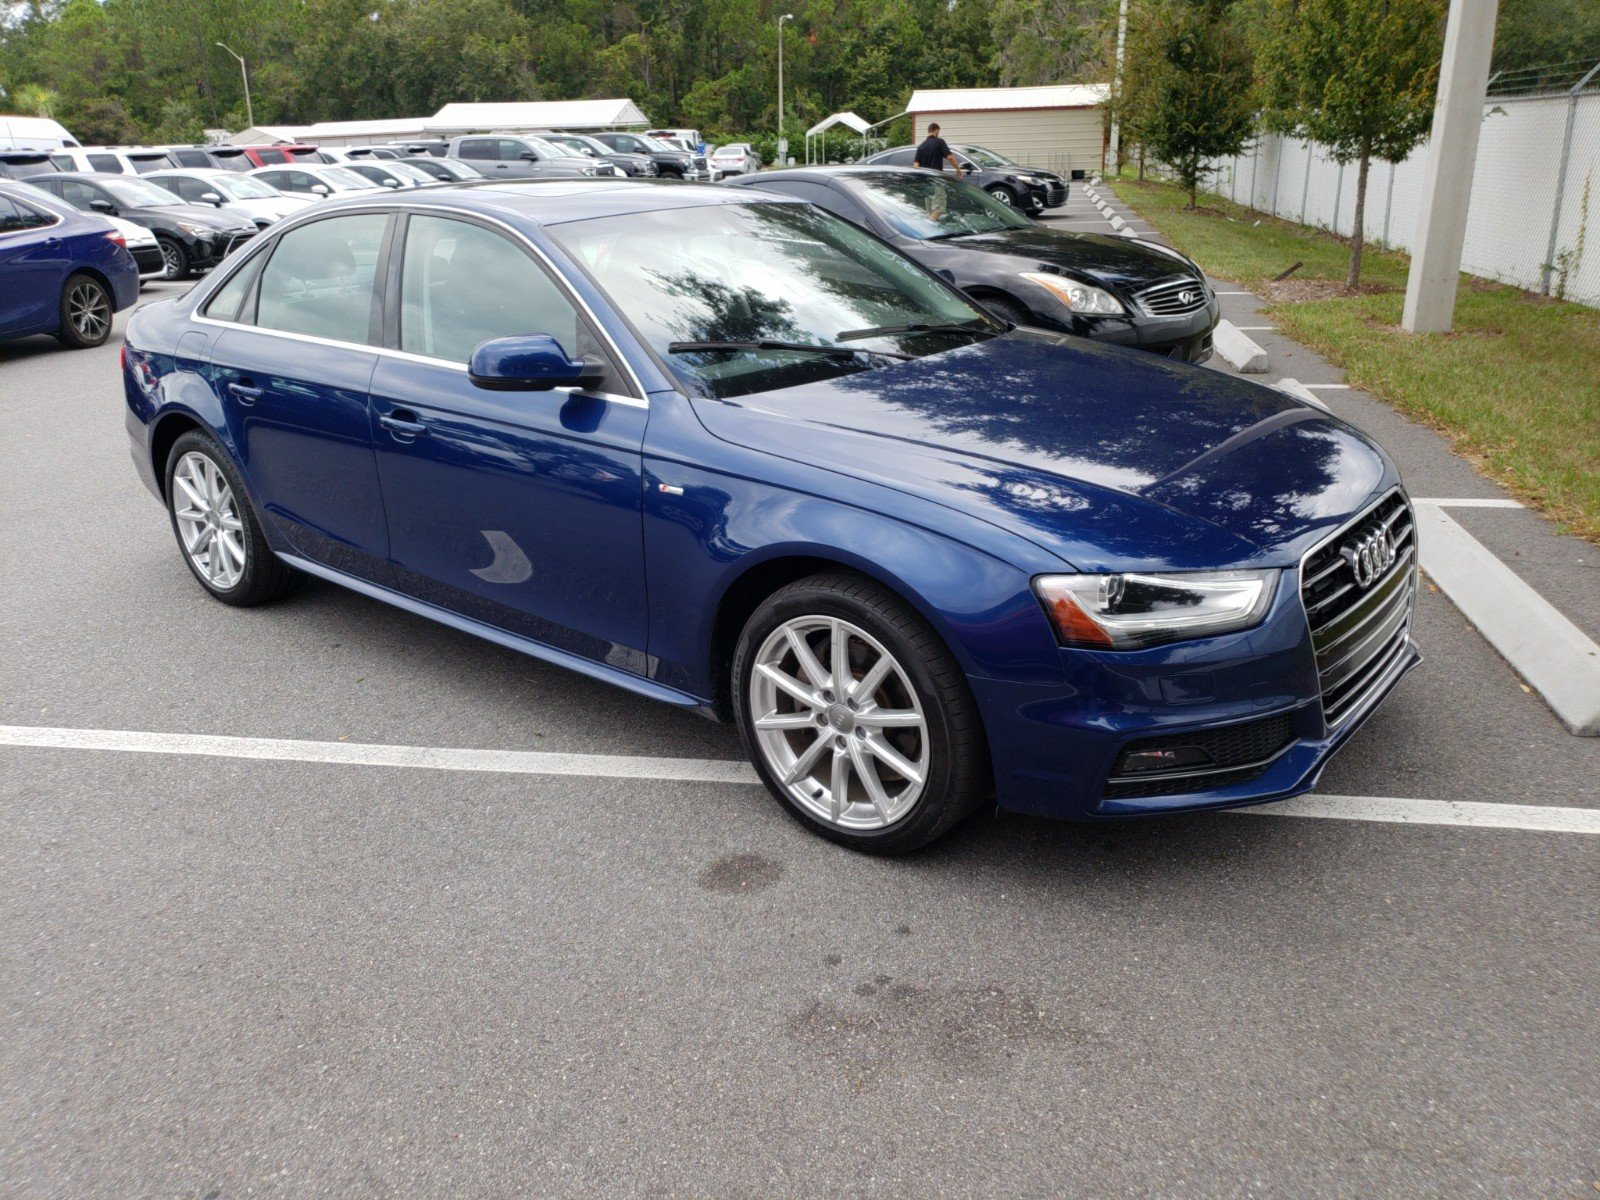 PreOwned Audi A Premium Dr Car In Jacksonville TYS - Audi a4 maintenance schedule